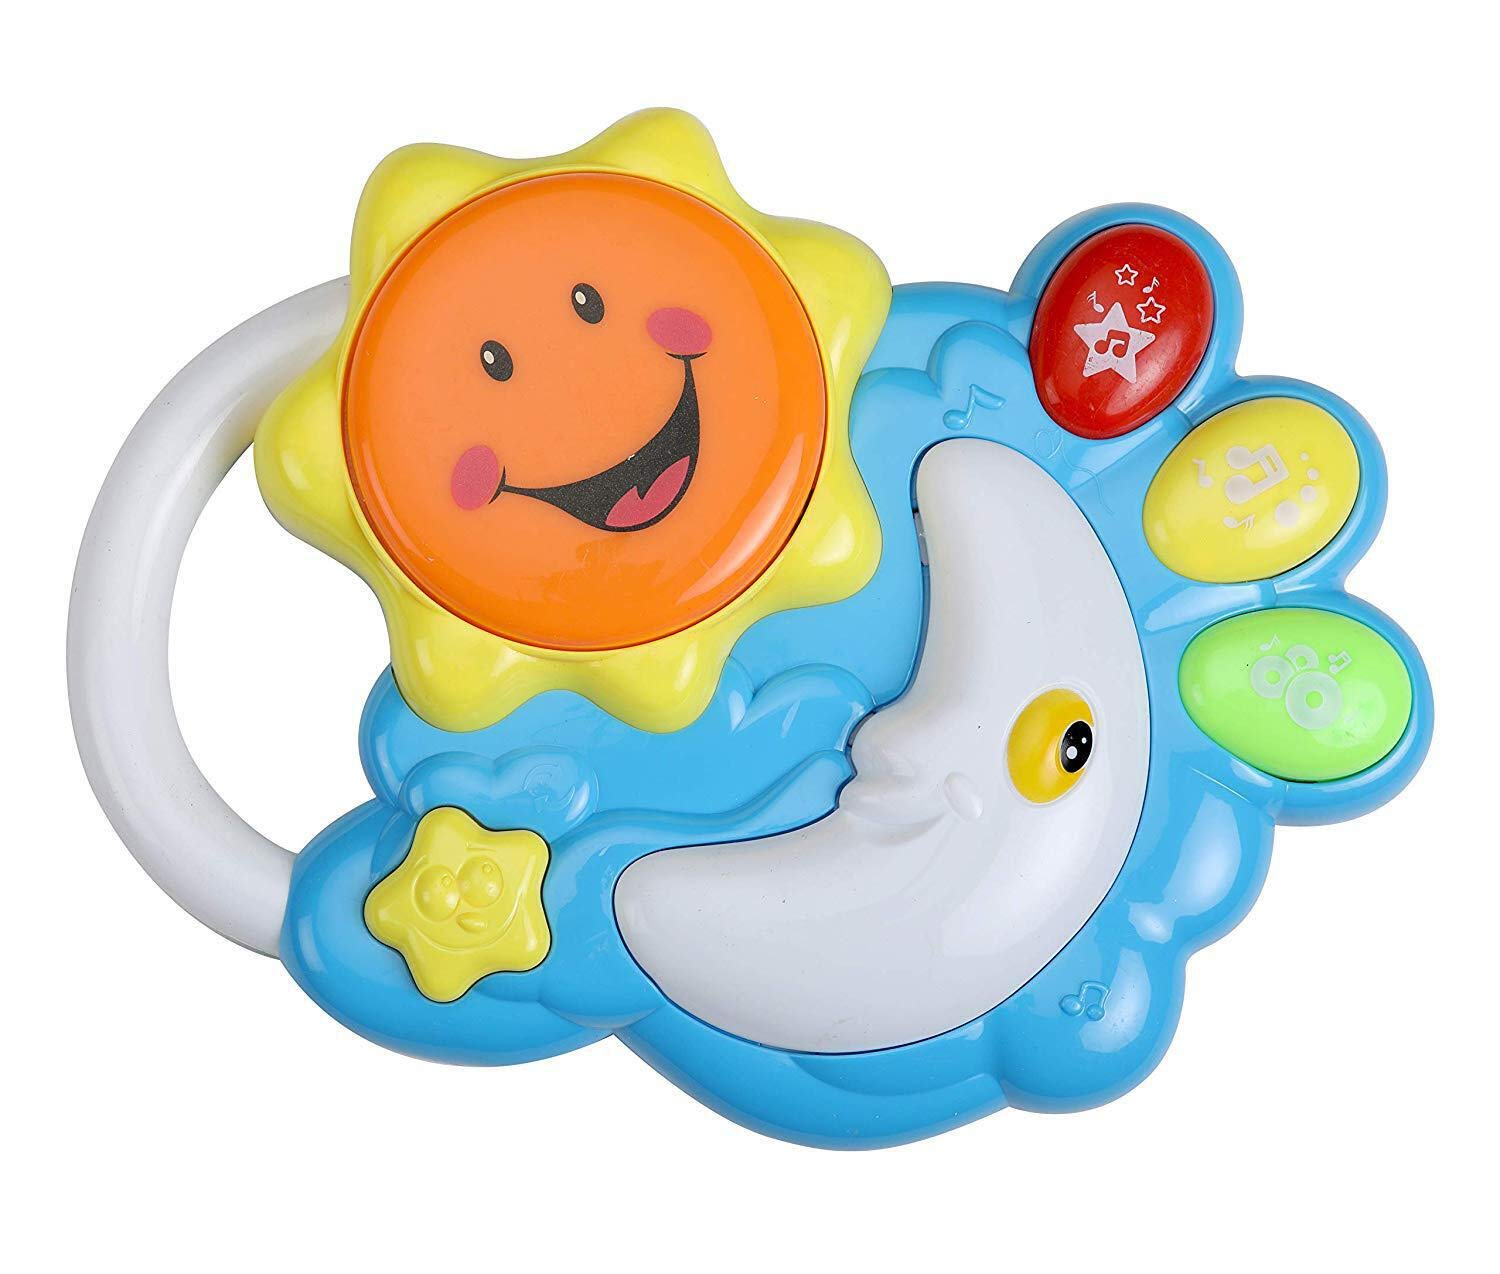 Luvlap - 18587 Sun, Moon Star Musical Drum and Keyboard for Baby, Multicolor